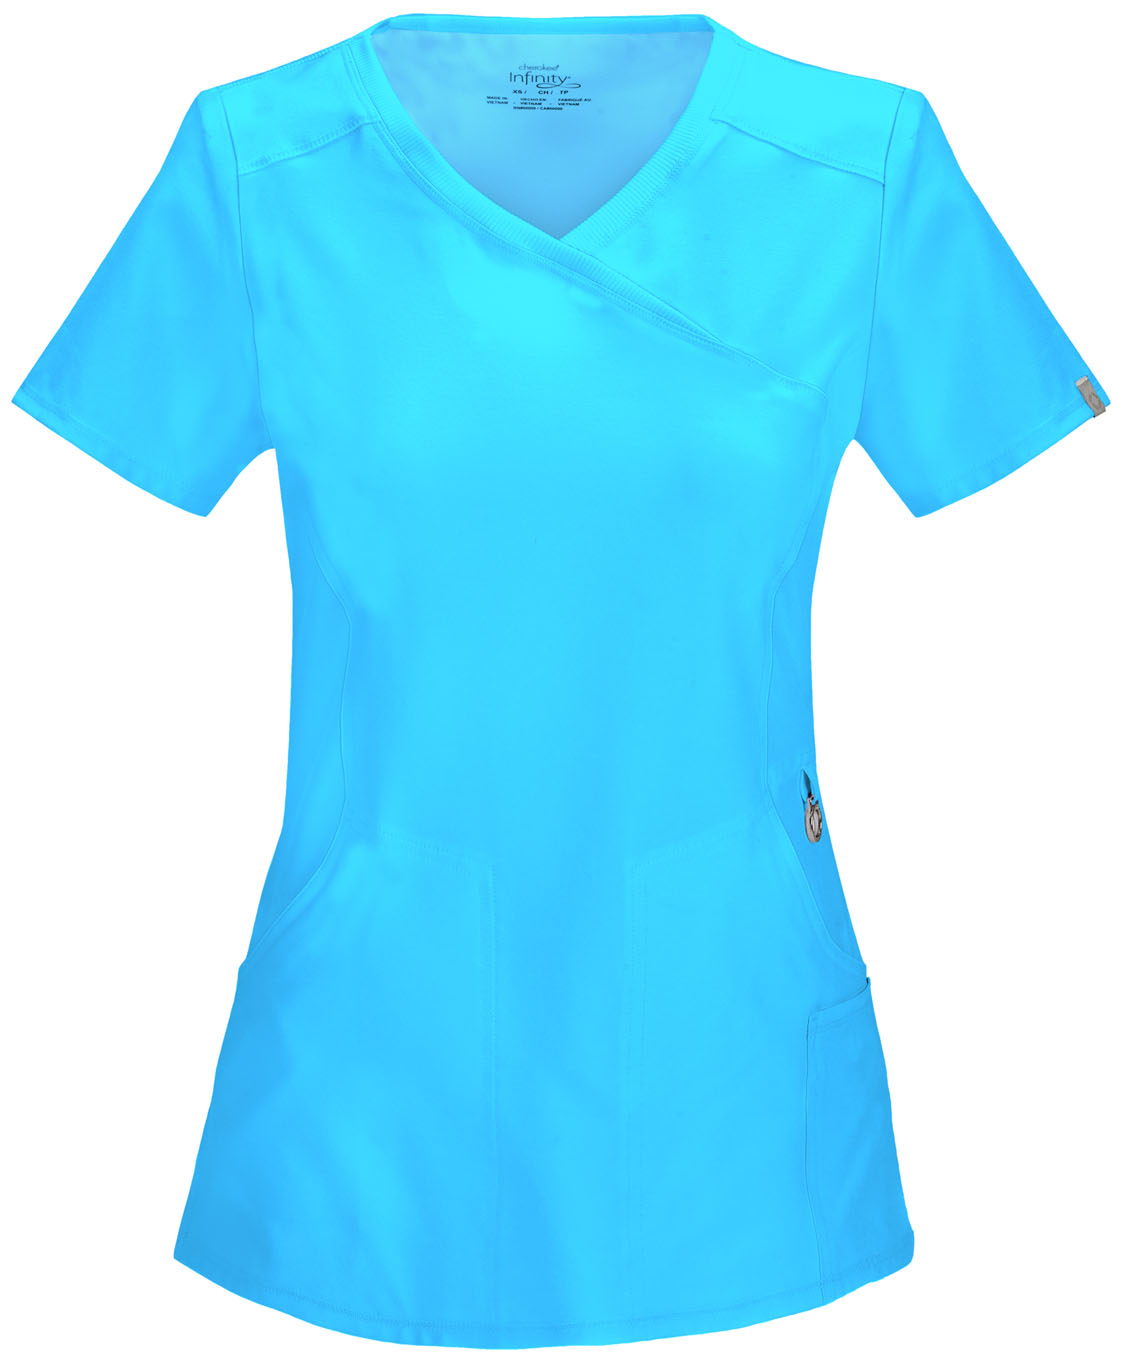 tlps cherokee infinity product clark mock by women top s uniforms blue from wrap